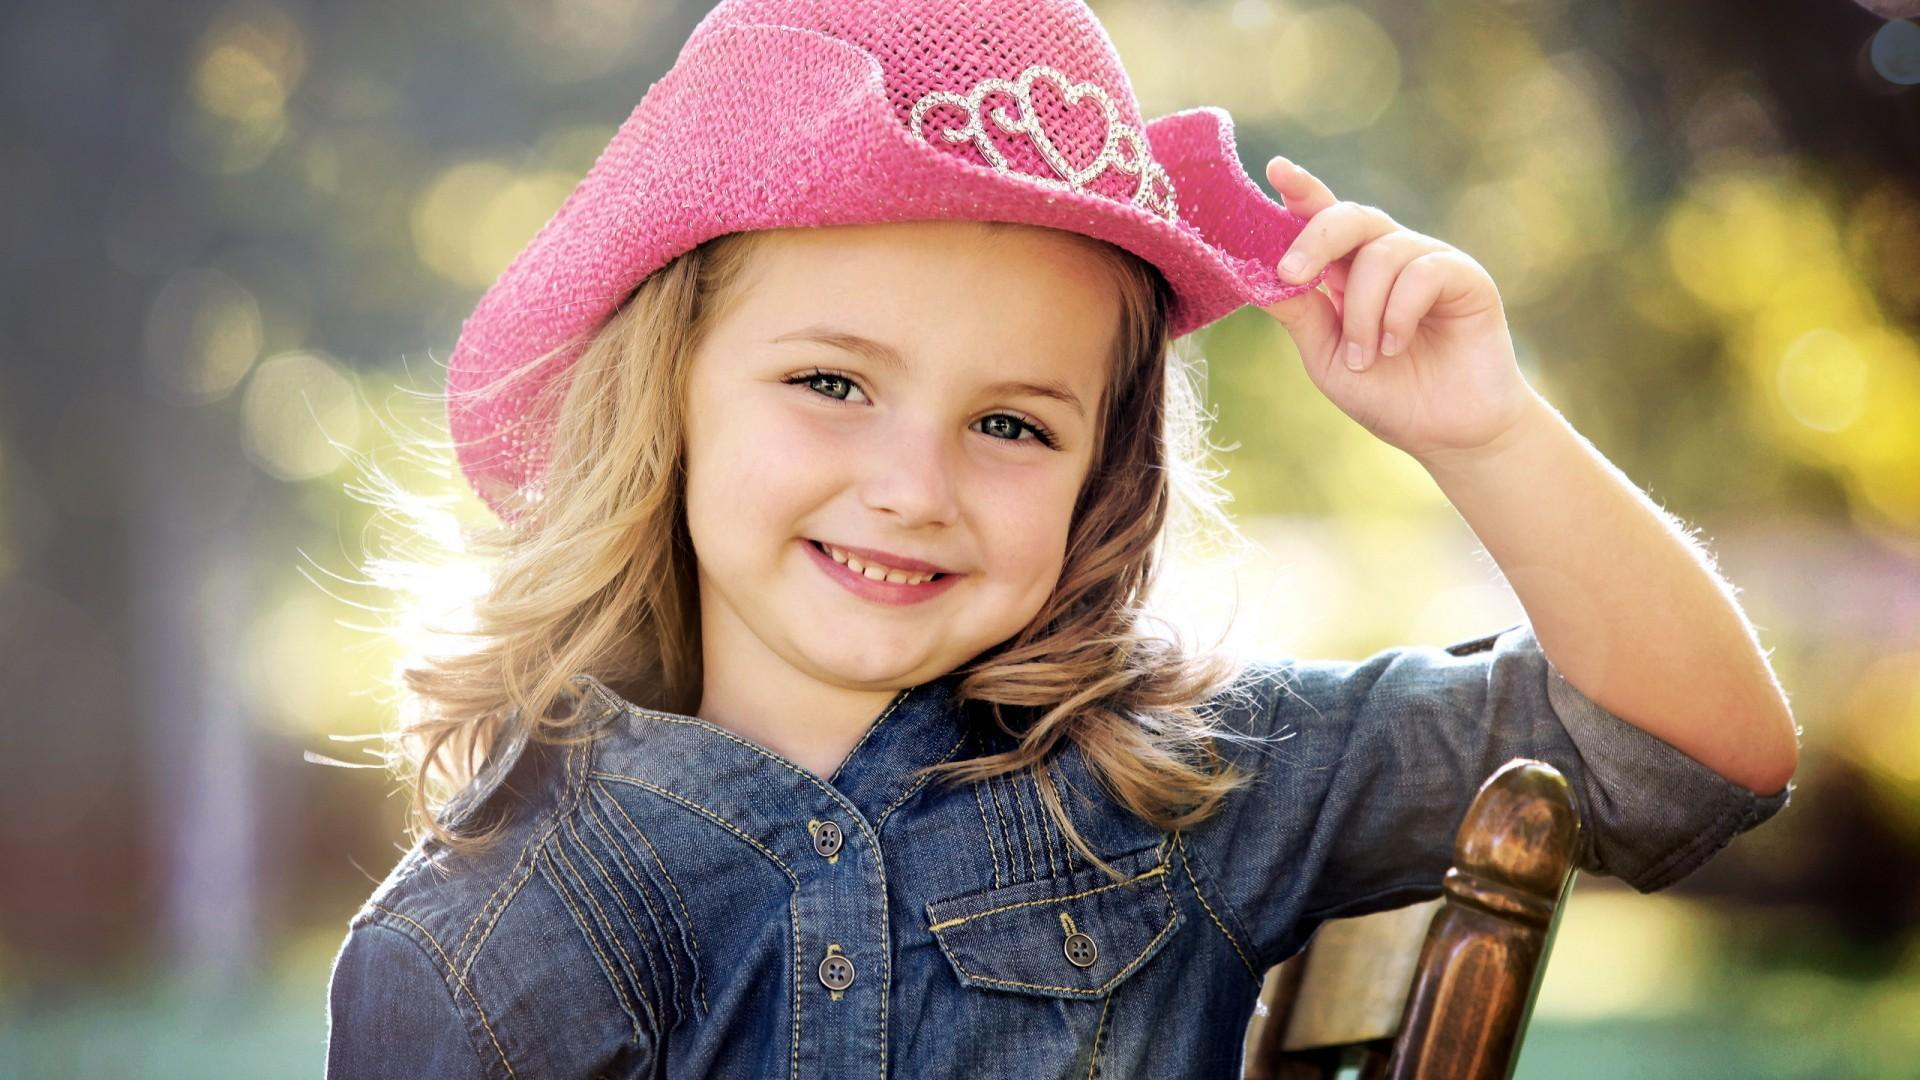 Cute Baby Girl HD Wallpapers 2015